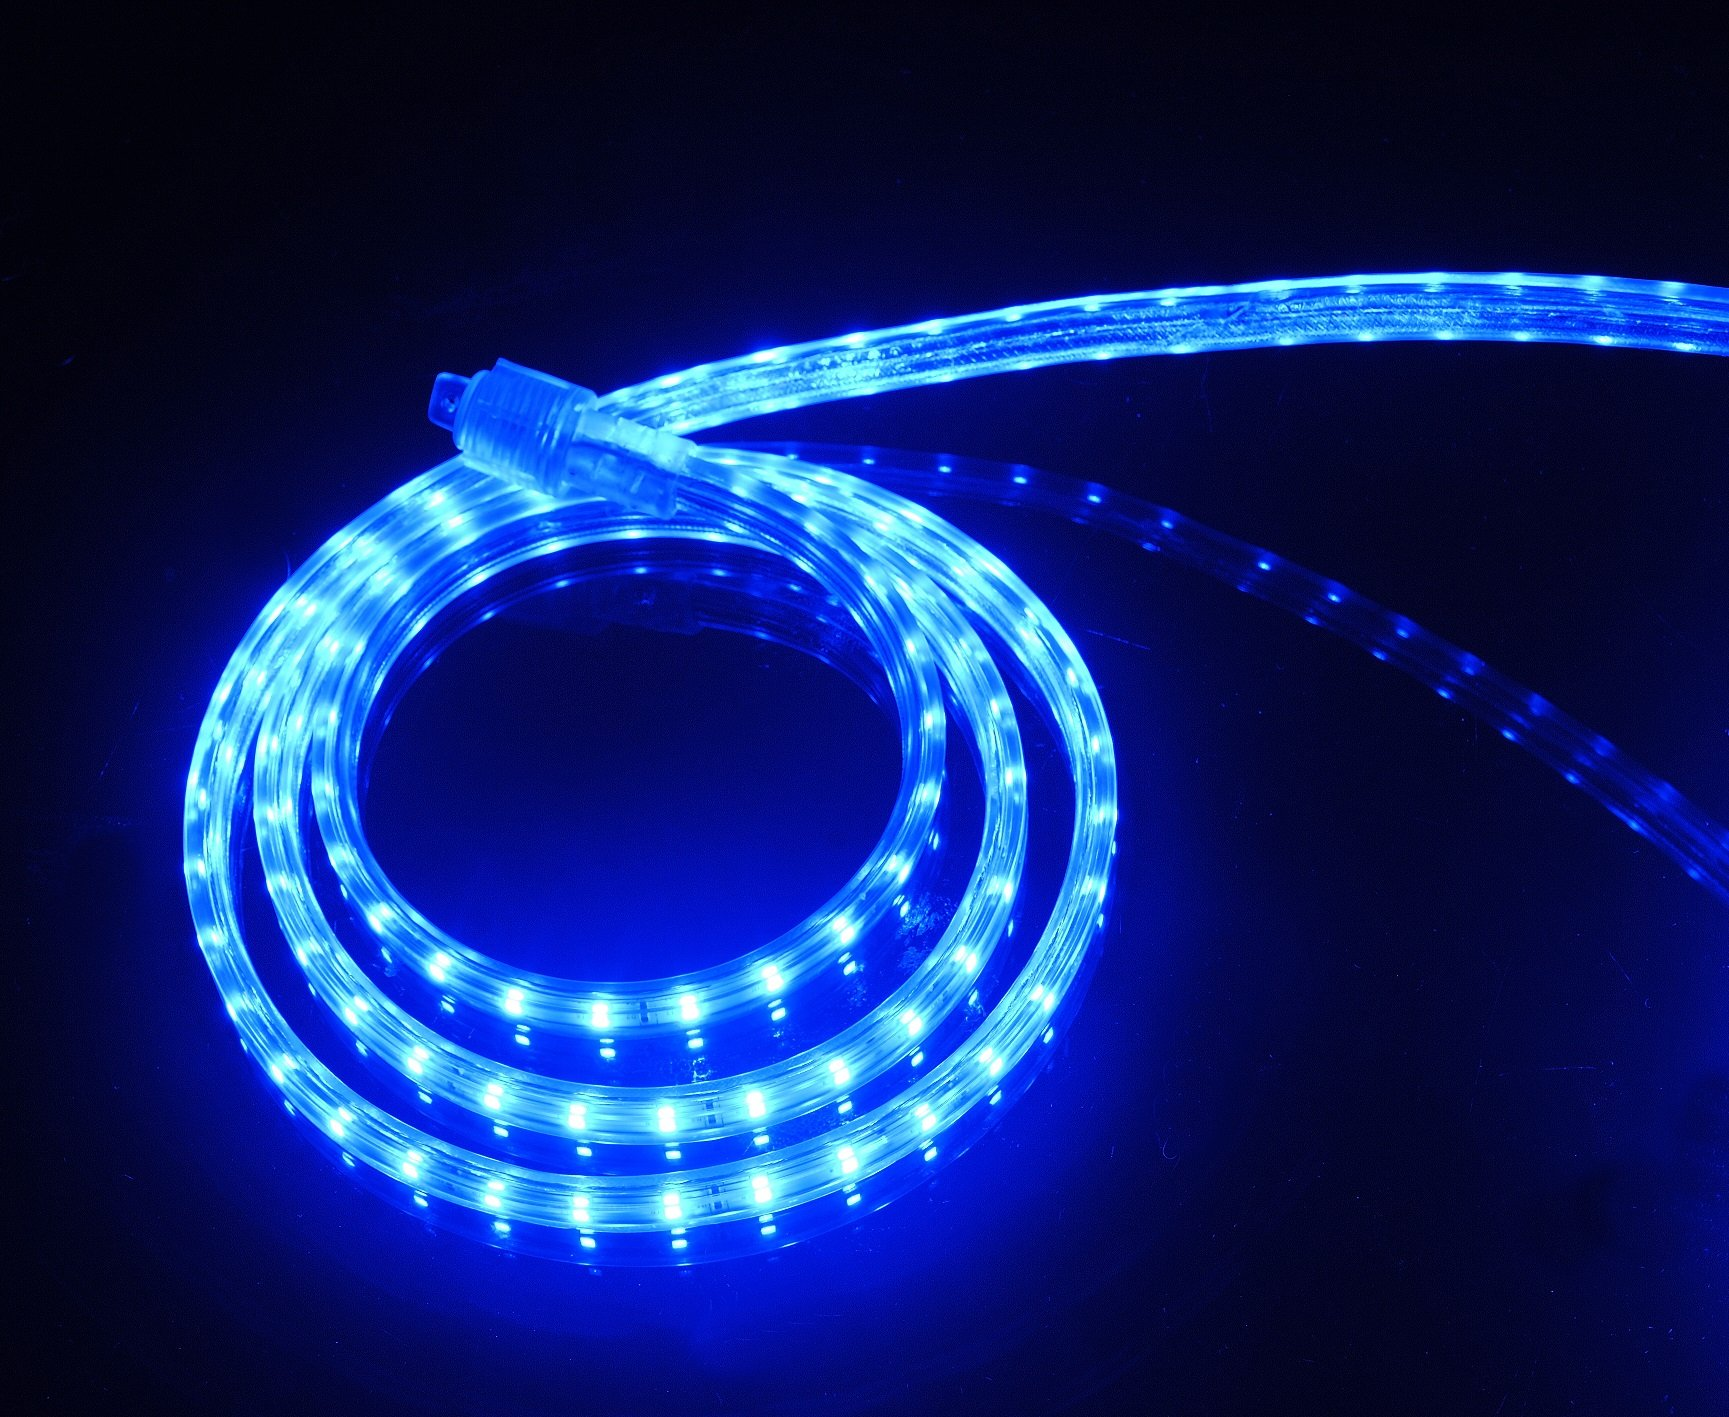 CBconcept UL Listed, 30 Feet, 3200 Lumen, Blue, Dimmable, 110-120V AC Flexible Flat LED Strip Rope Light, 540 Units 3528 SMD LEDs, Indoor/Outdoor Use, Accessories Included, [Ready to use]